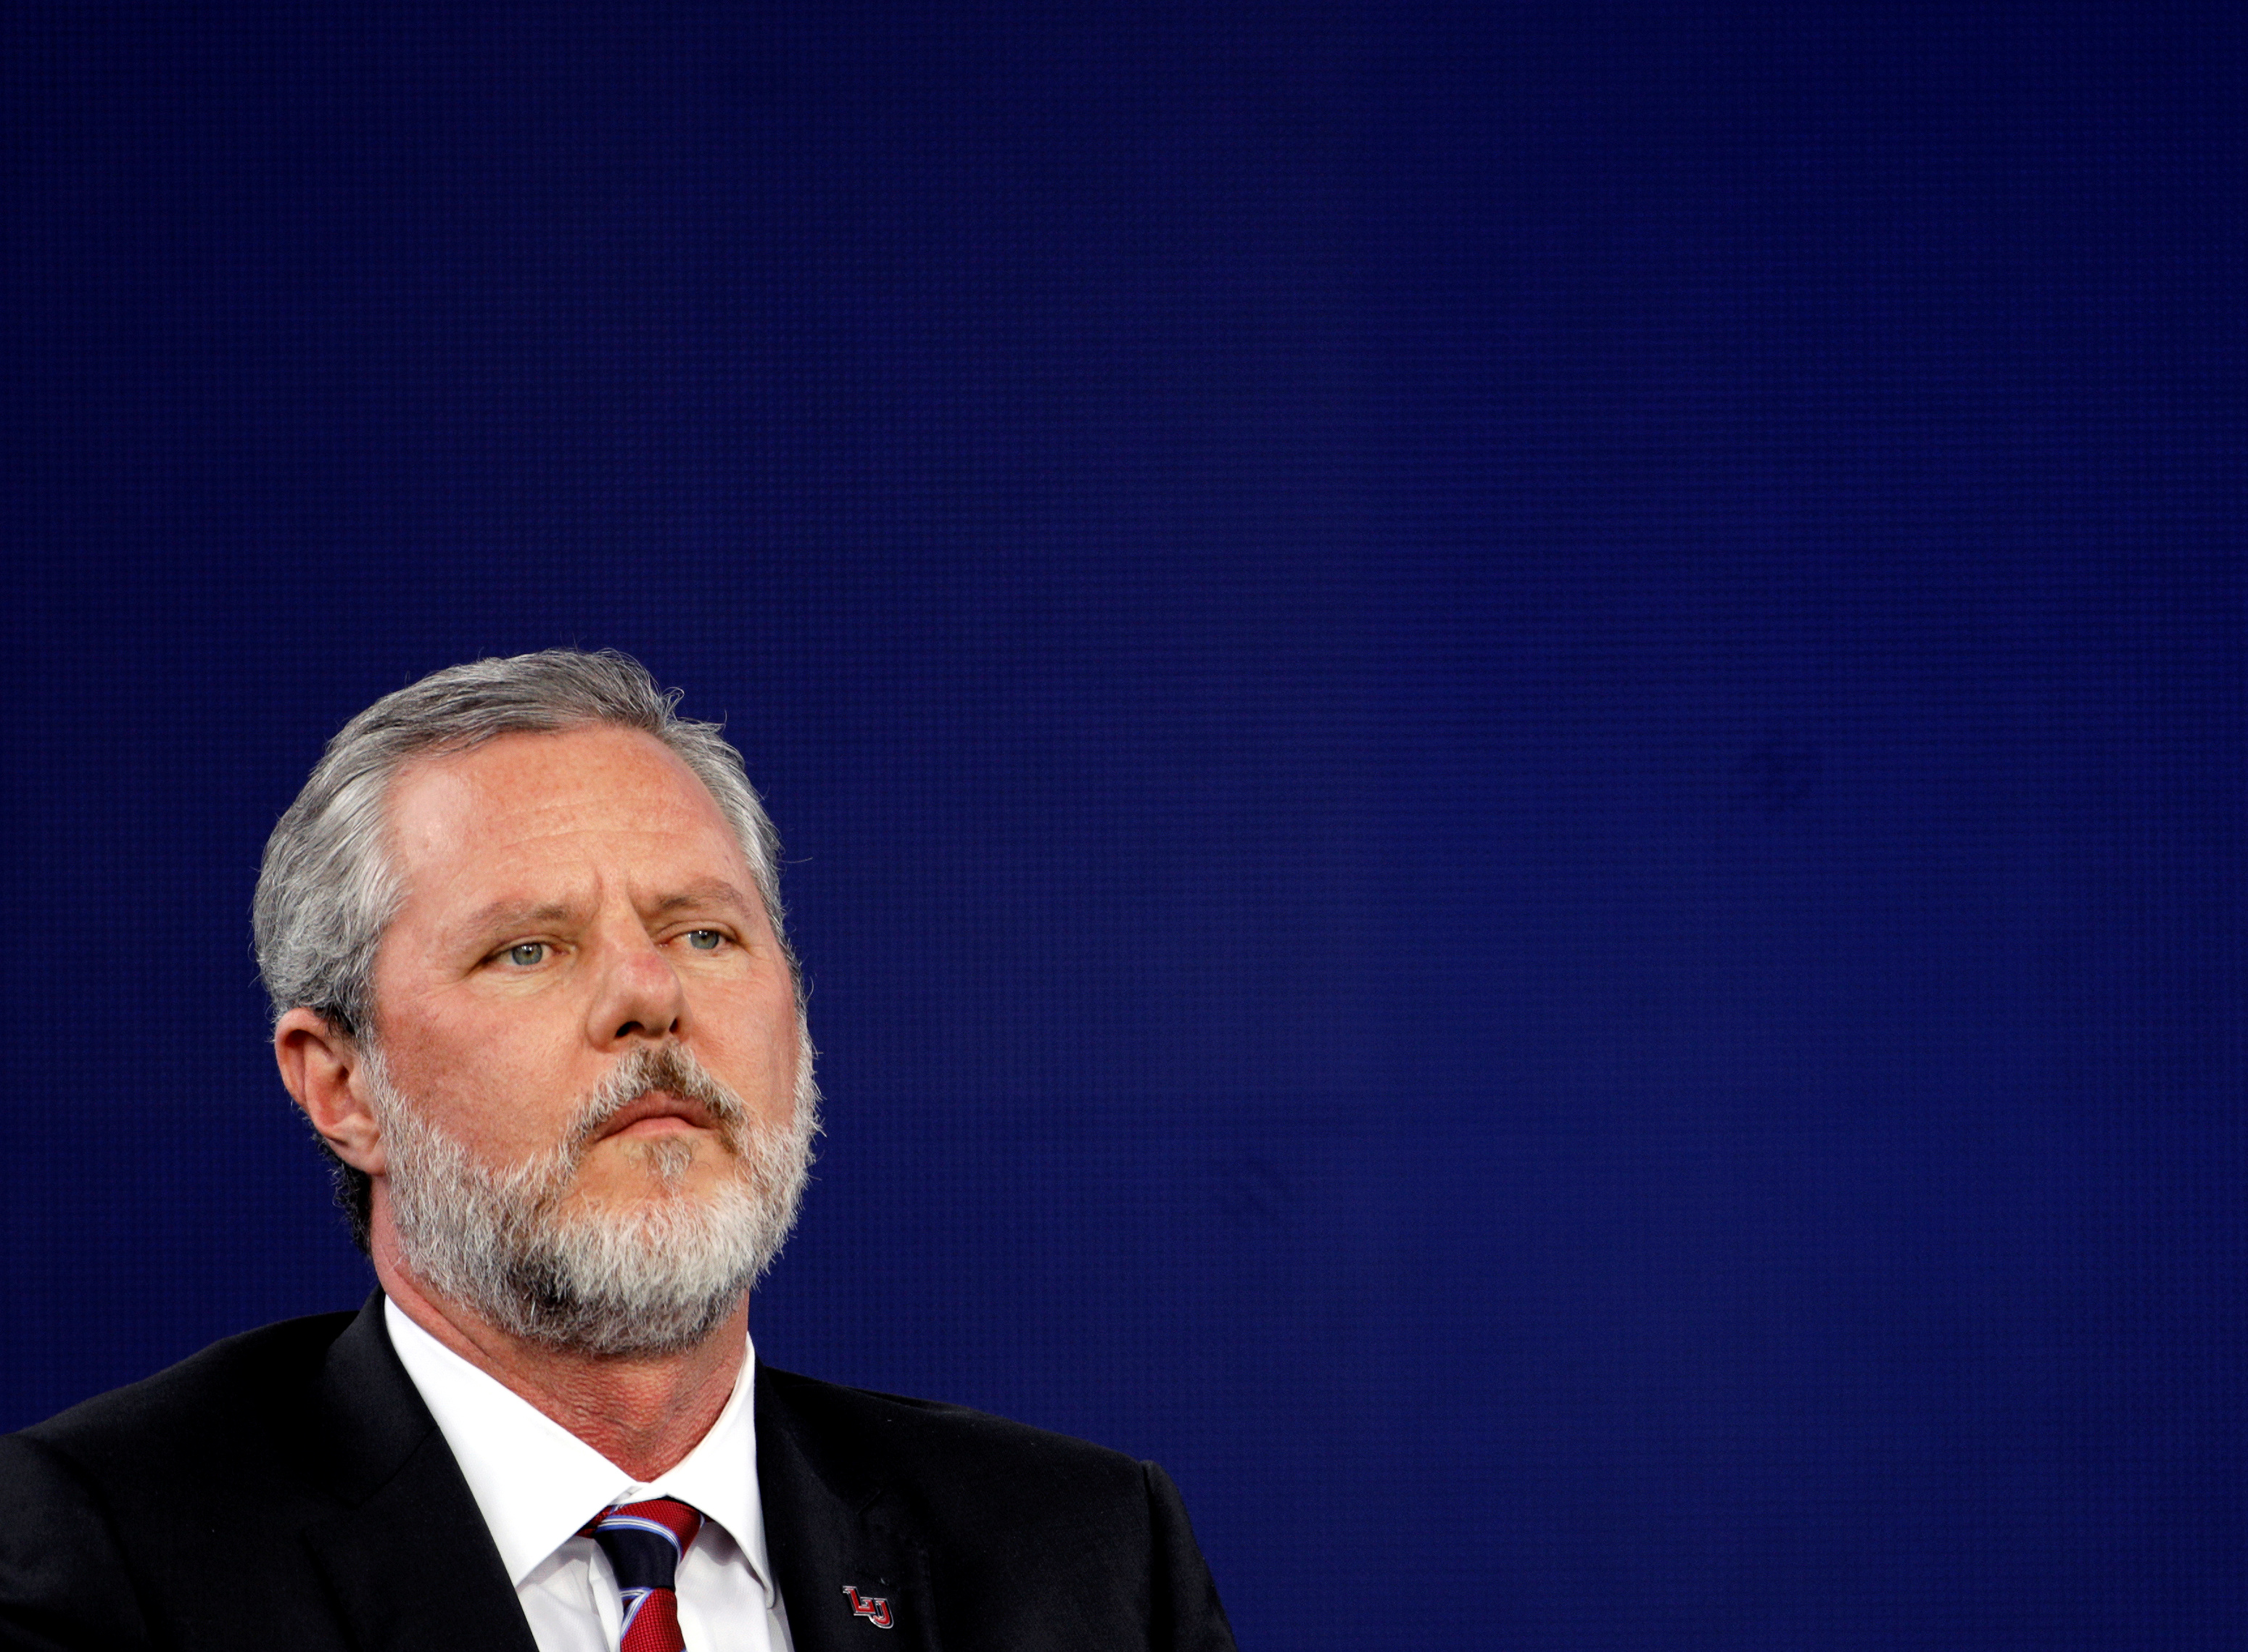 Liberty University President Jerry Falwell Jr., attends the school's commencement ceremonies in Lynchburg, Virginia, U.S., May 11, 2019.  REUTERS/Jonathan Drake